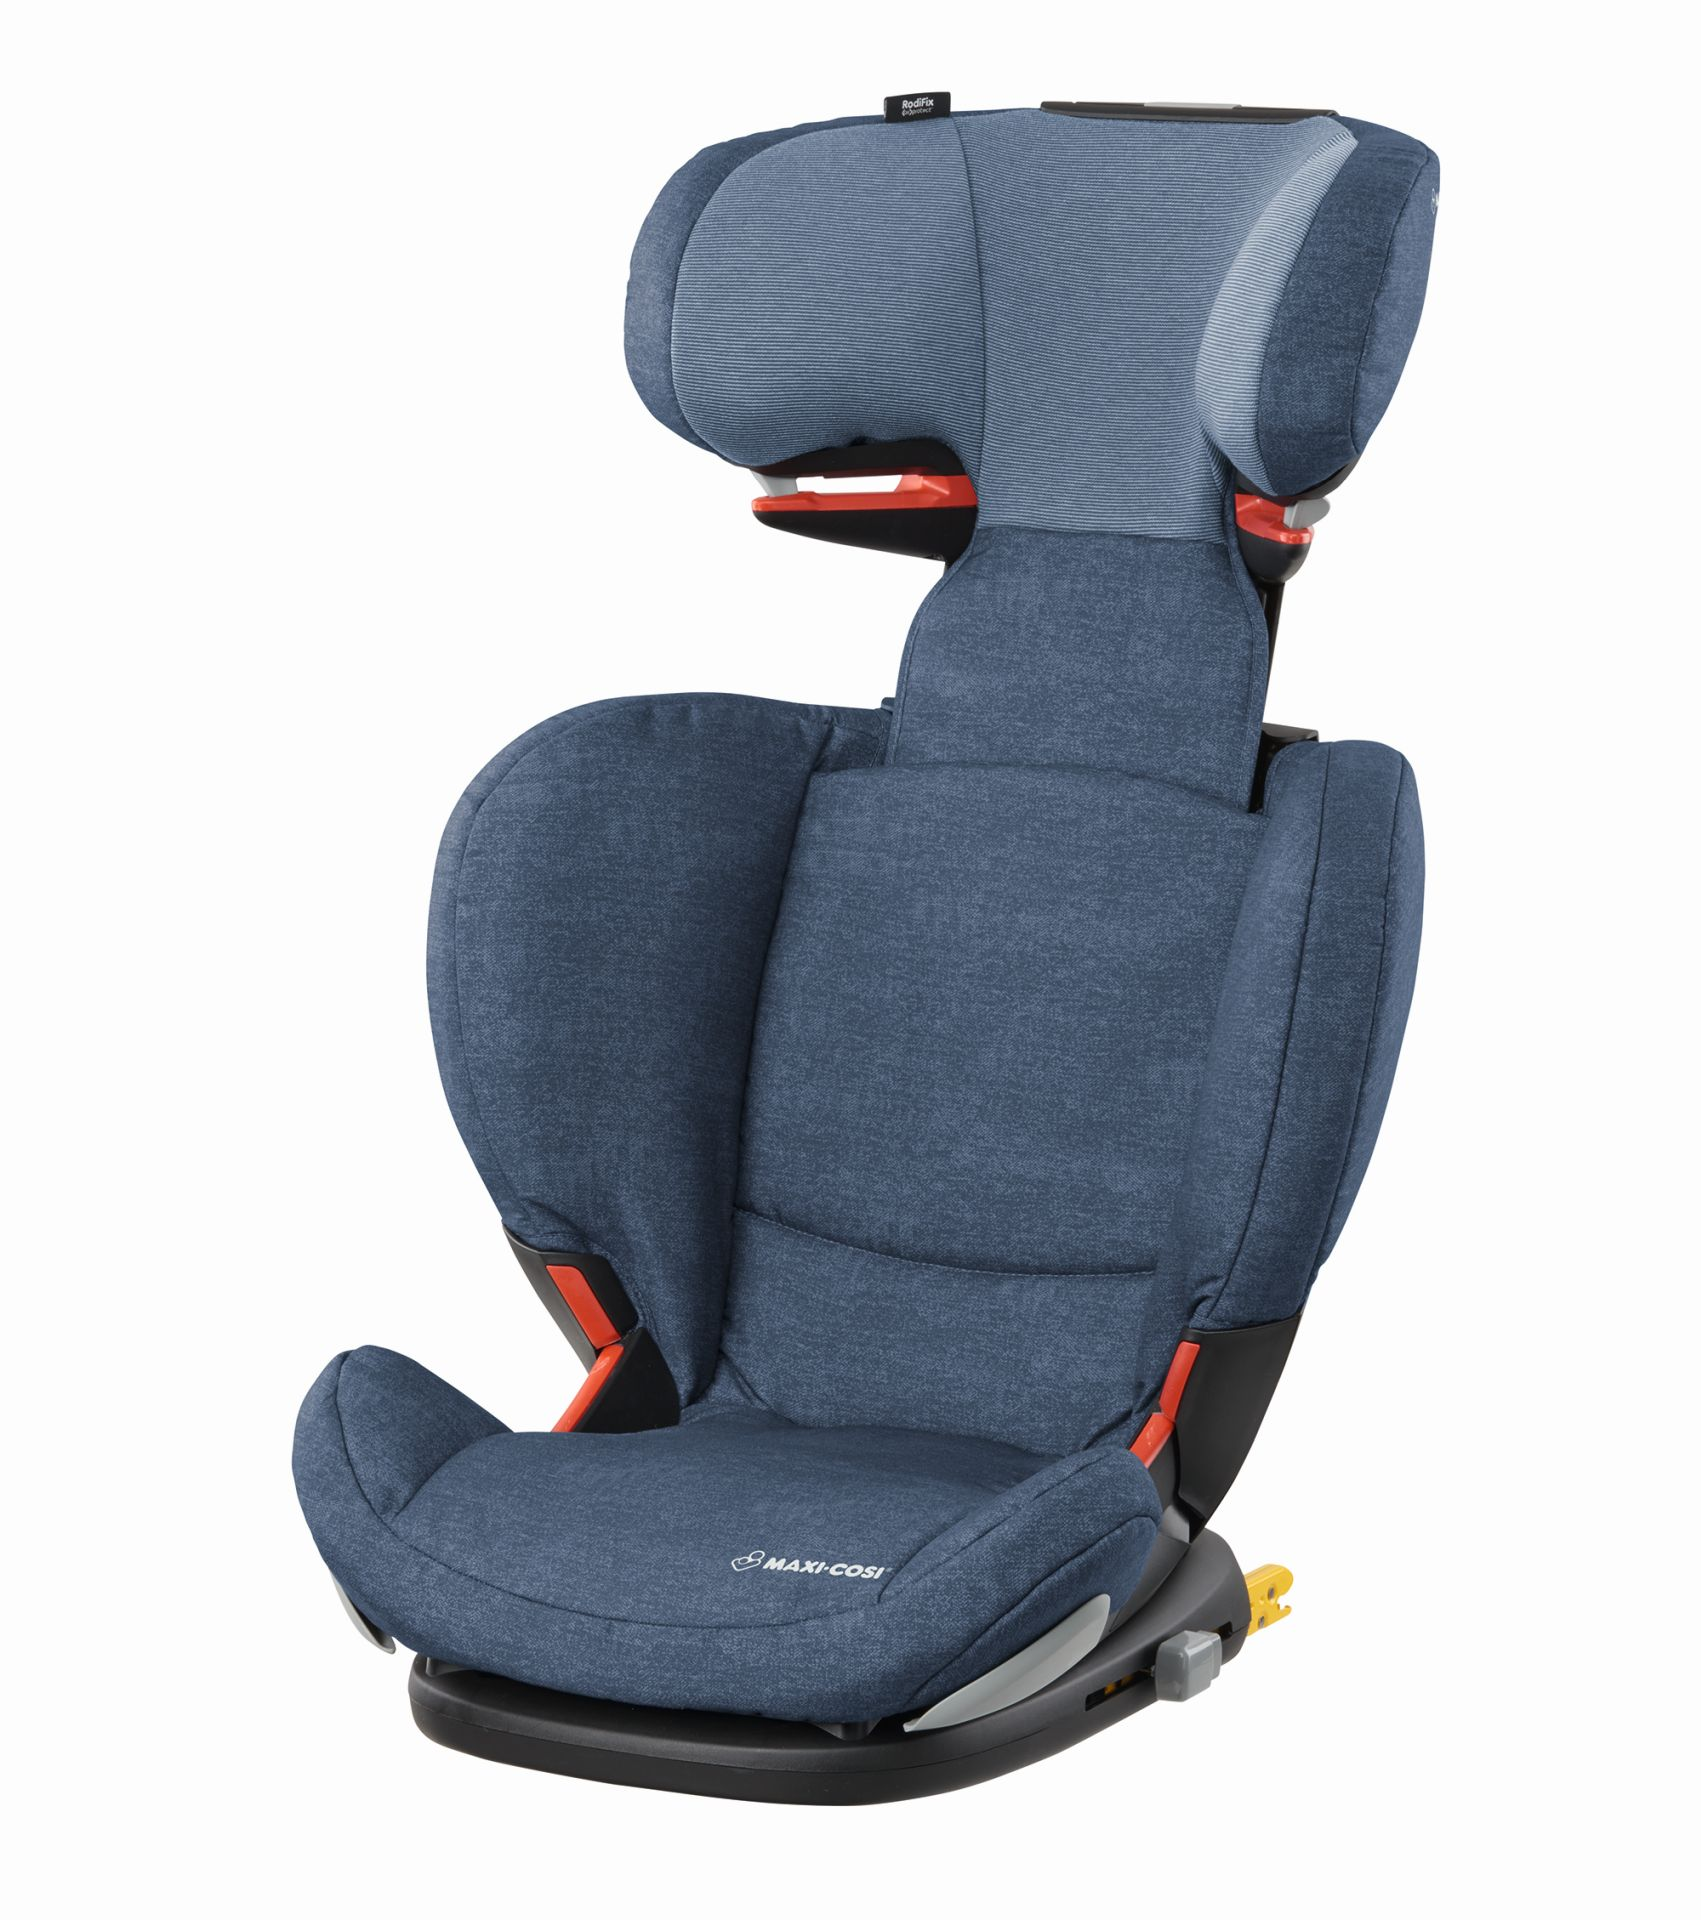 maxi cosi safety seat rodifix airprotect 2018 nomad blue buy at kidsroom car seats. Black Bedroom Furniture Sets. Home Design Ideas